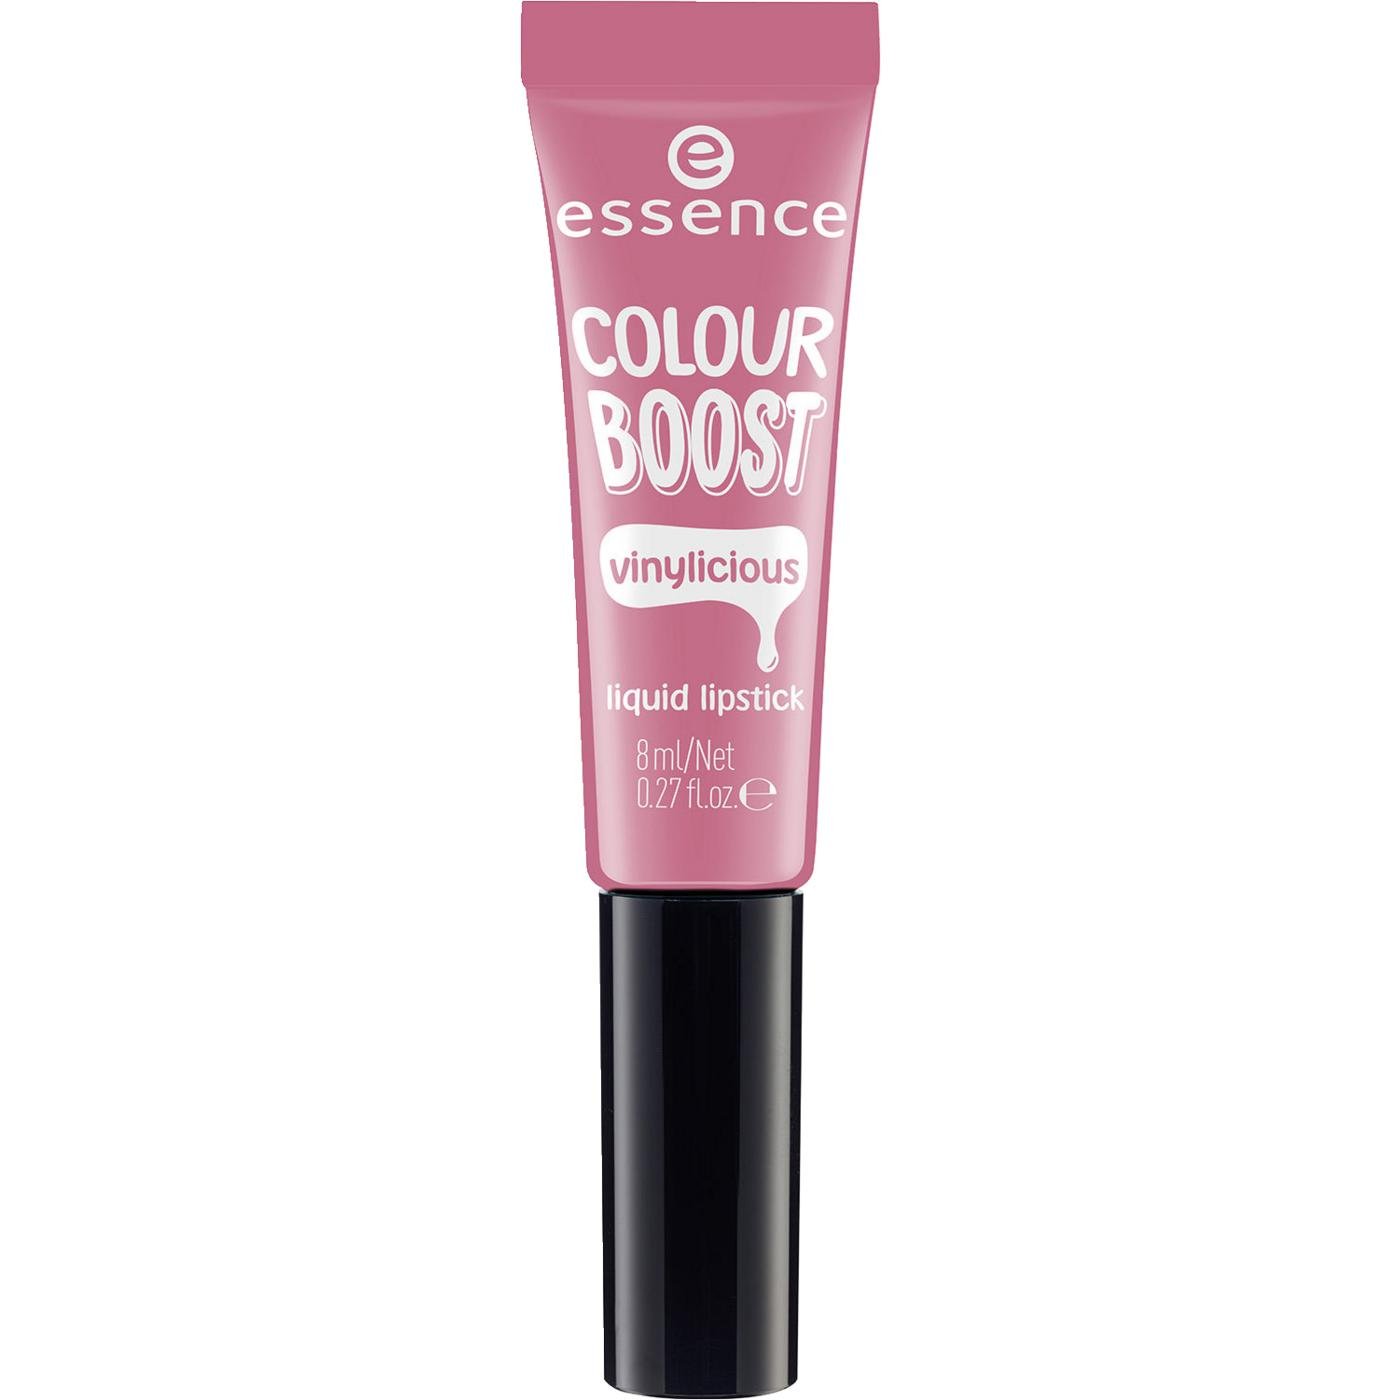 essence colour boost vinylicious liquid lipstick 03